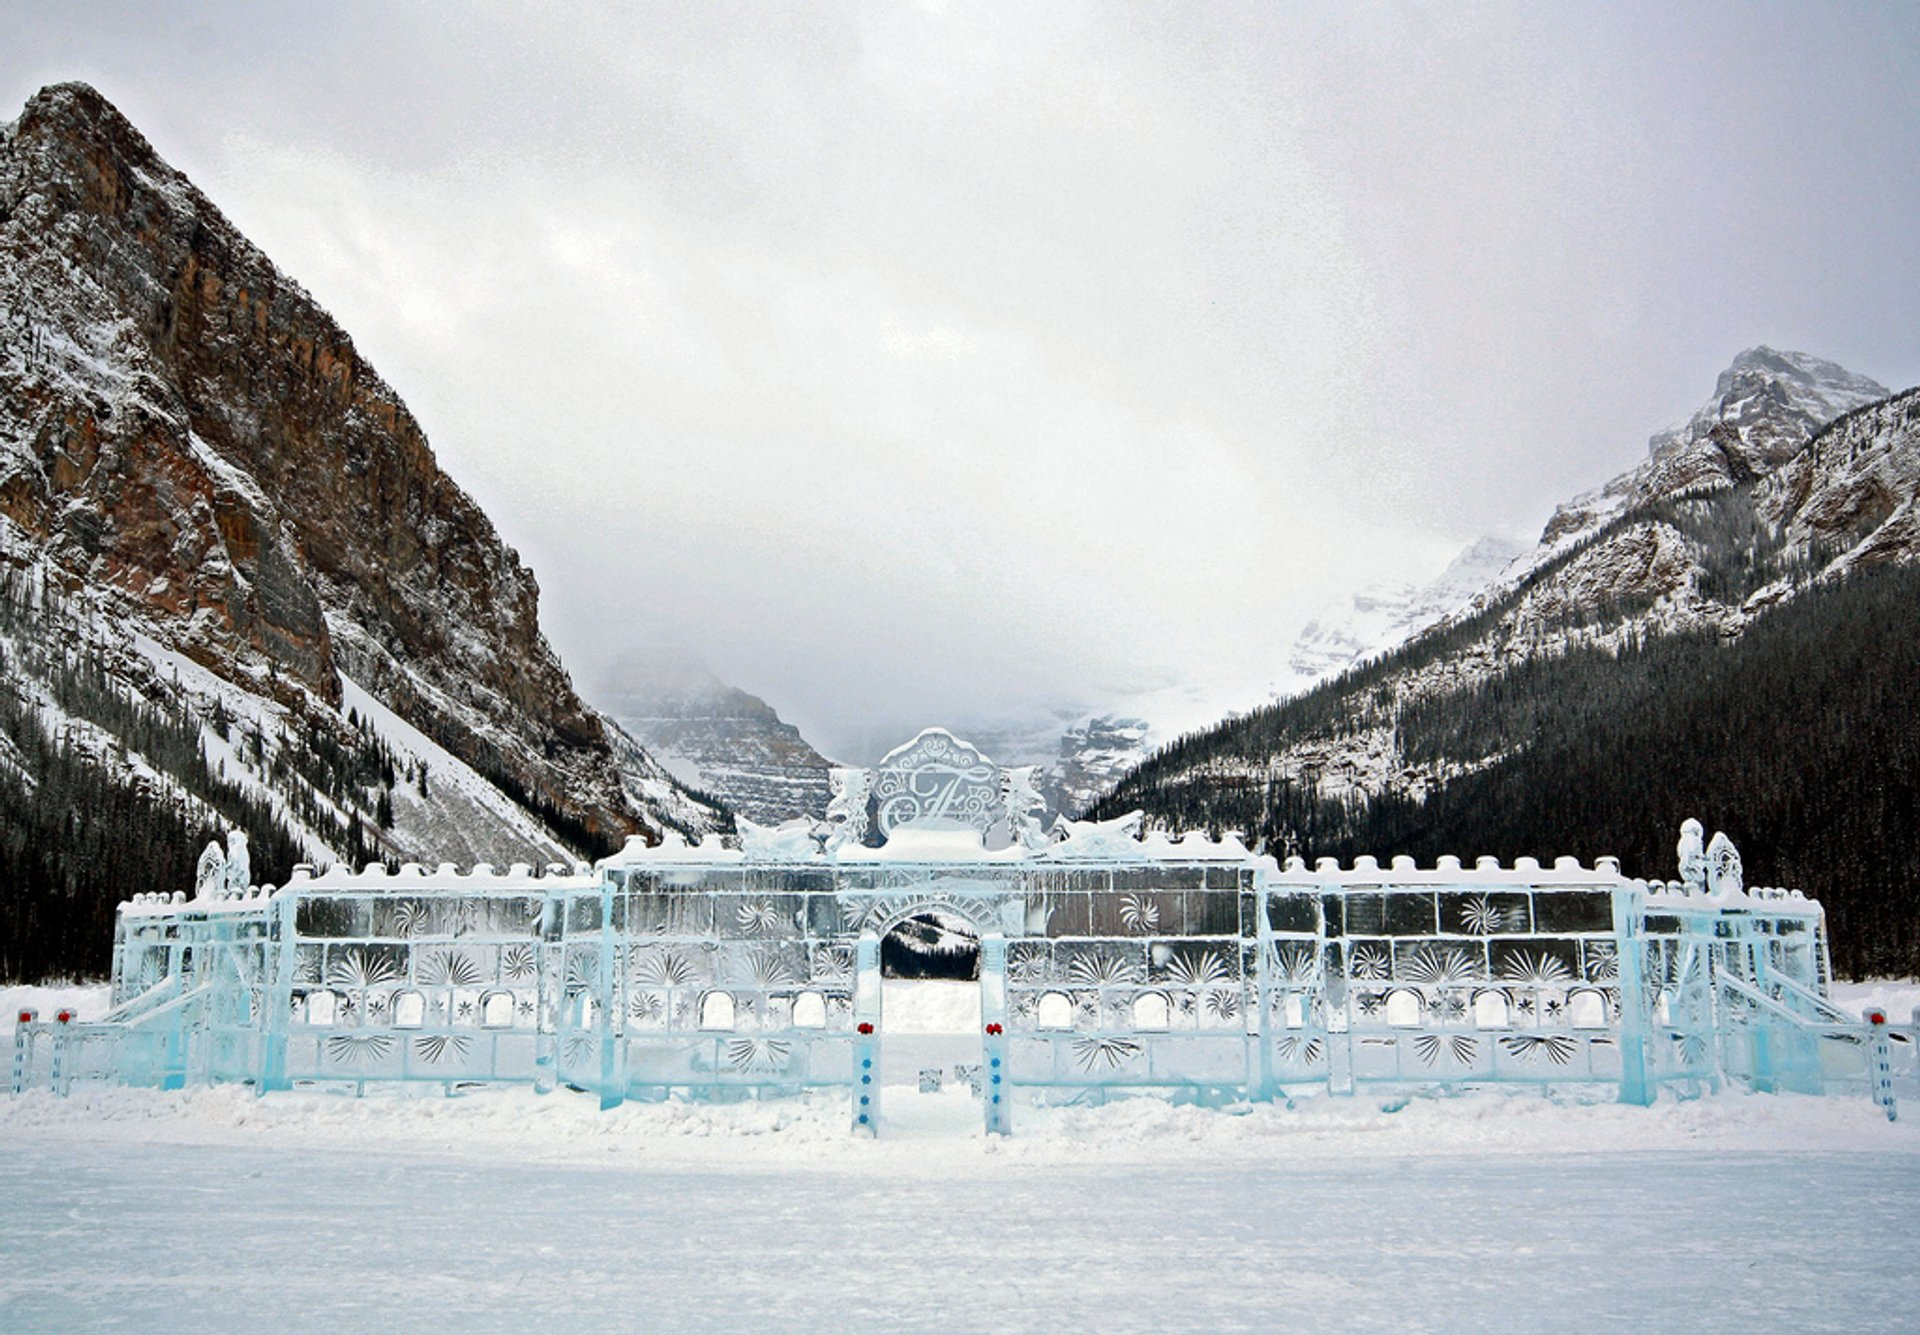 Lake Louise Ice Magic Festival in Banff & Jasper National Parks - Best Season